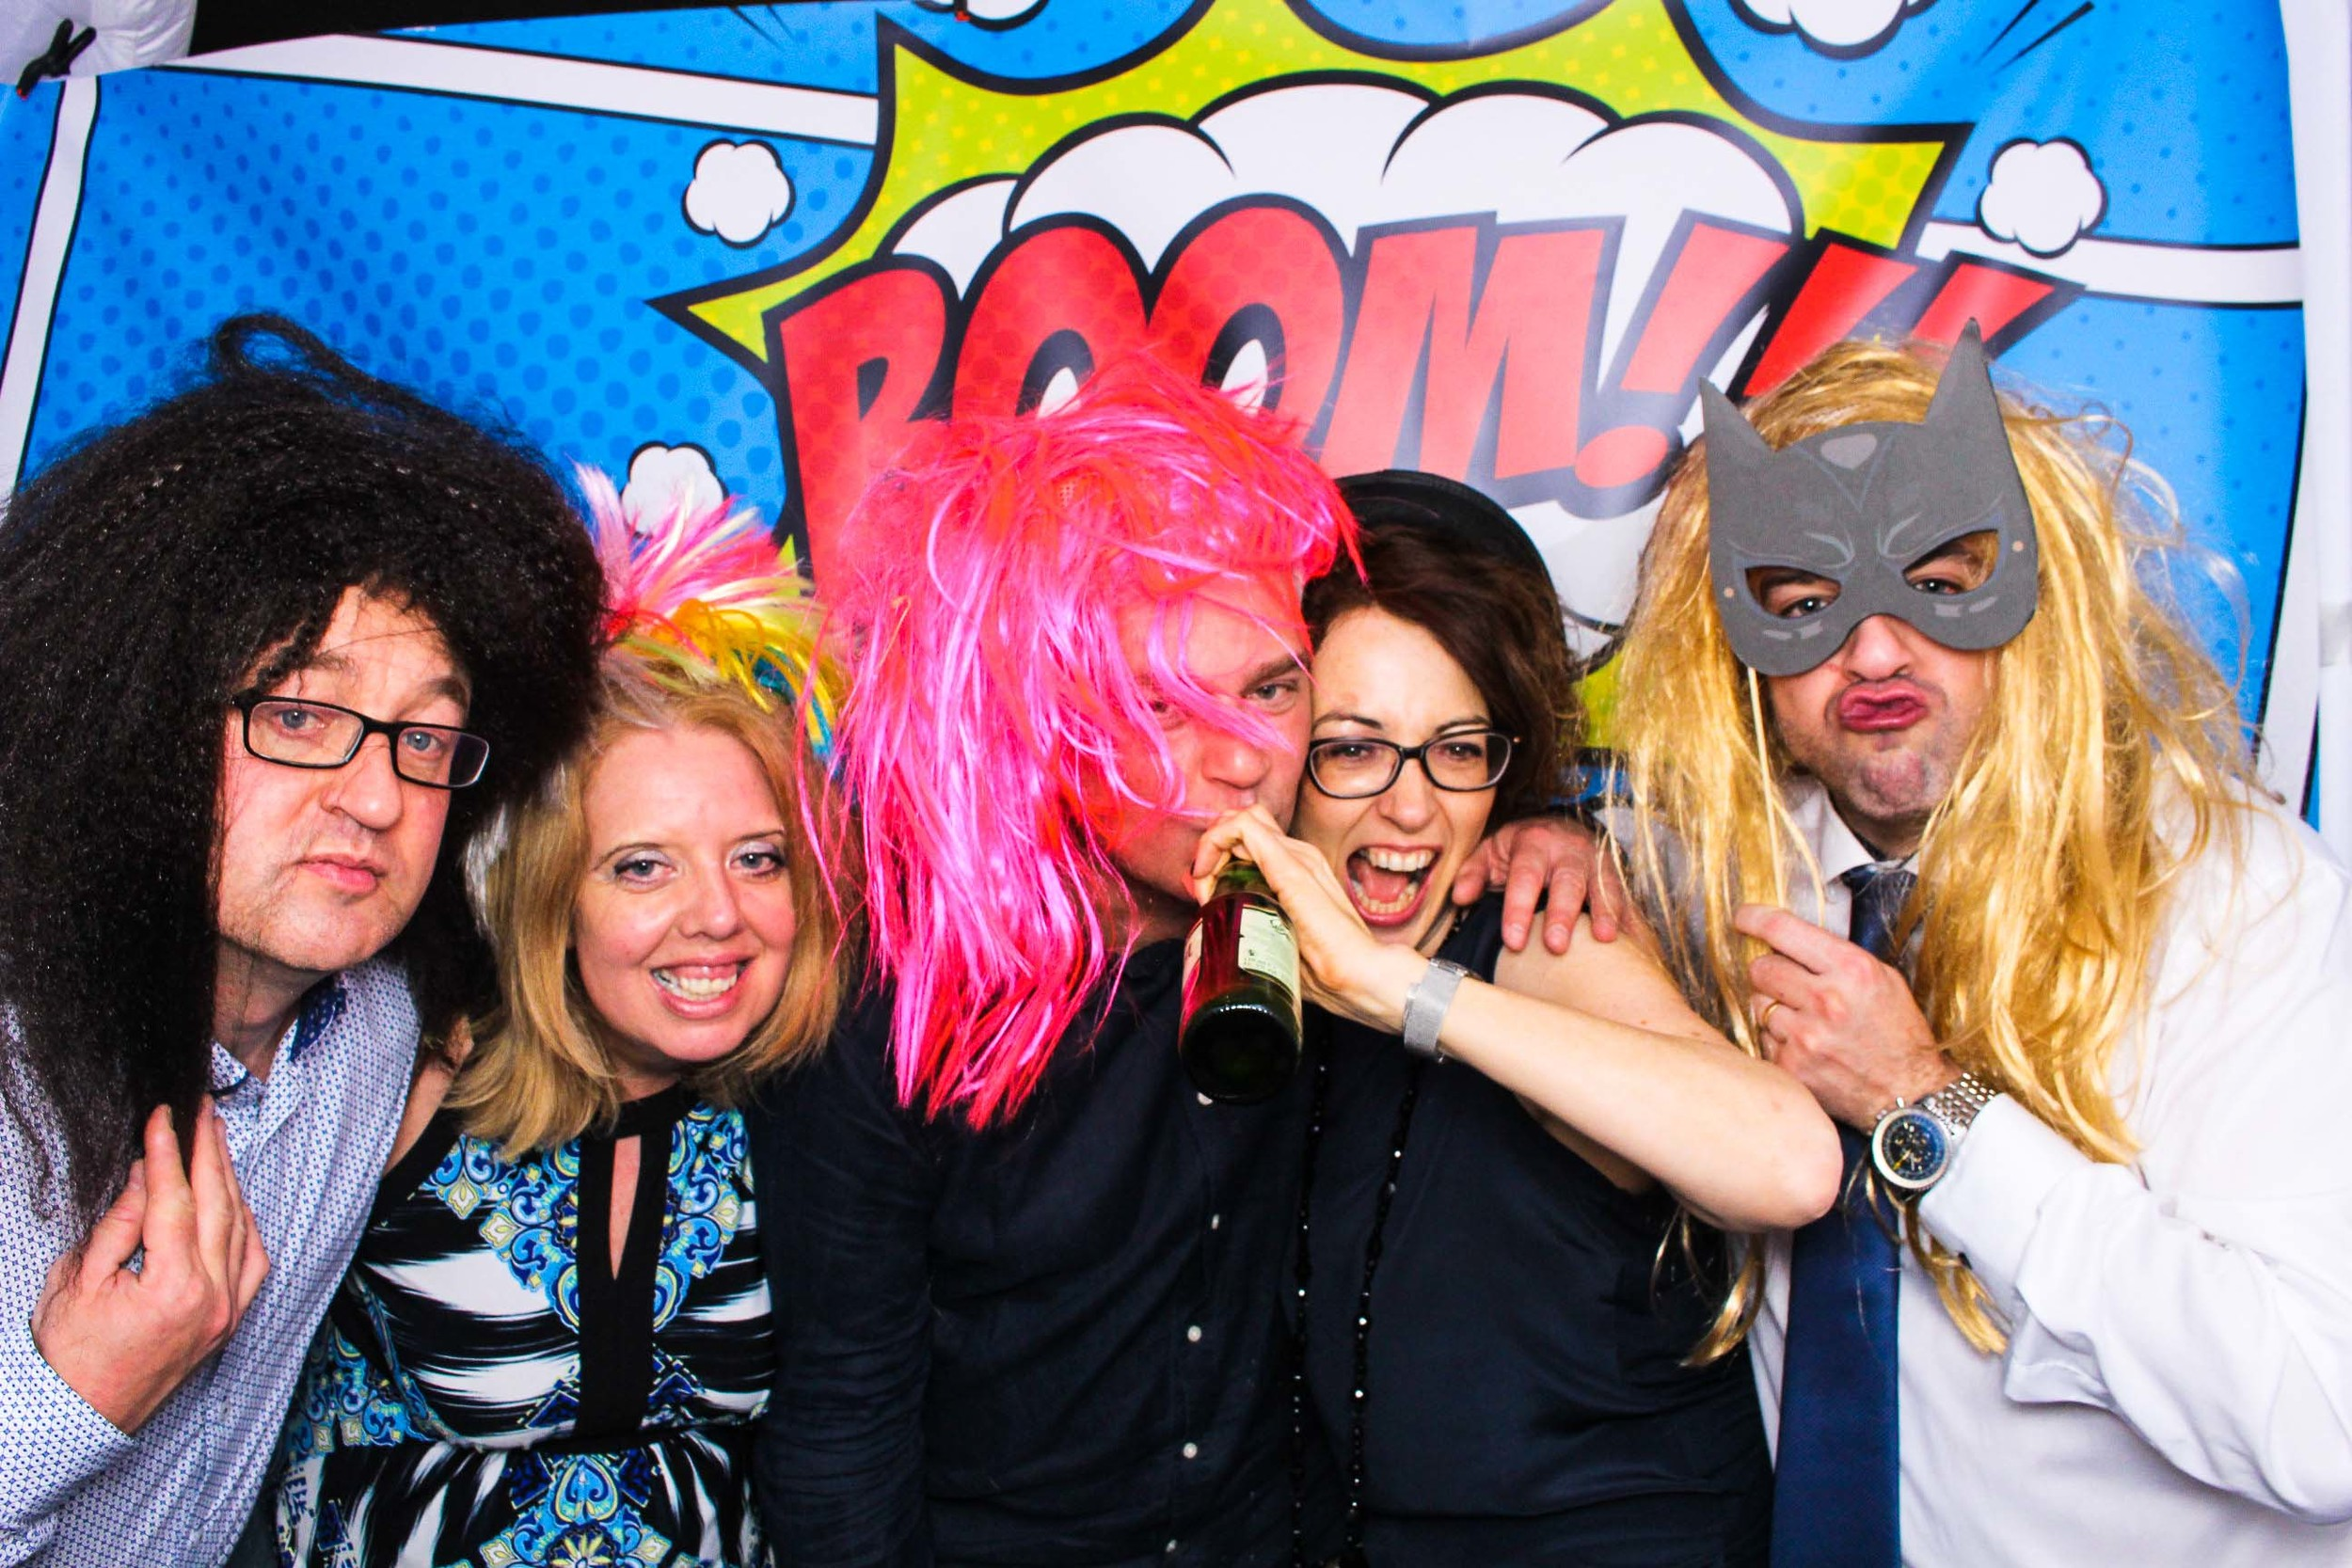 Fotoauto Photo Booth Hire - Shop Direct-331.jpg